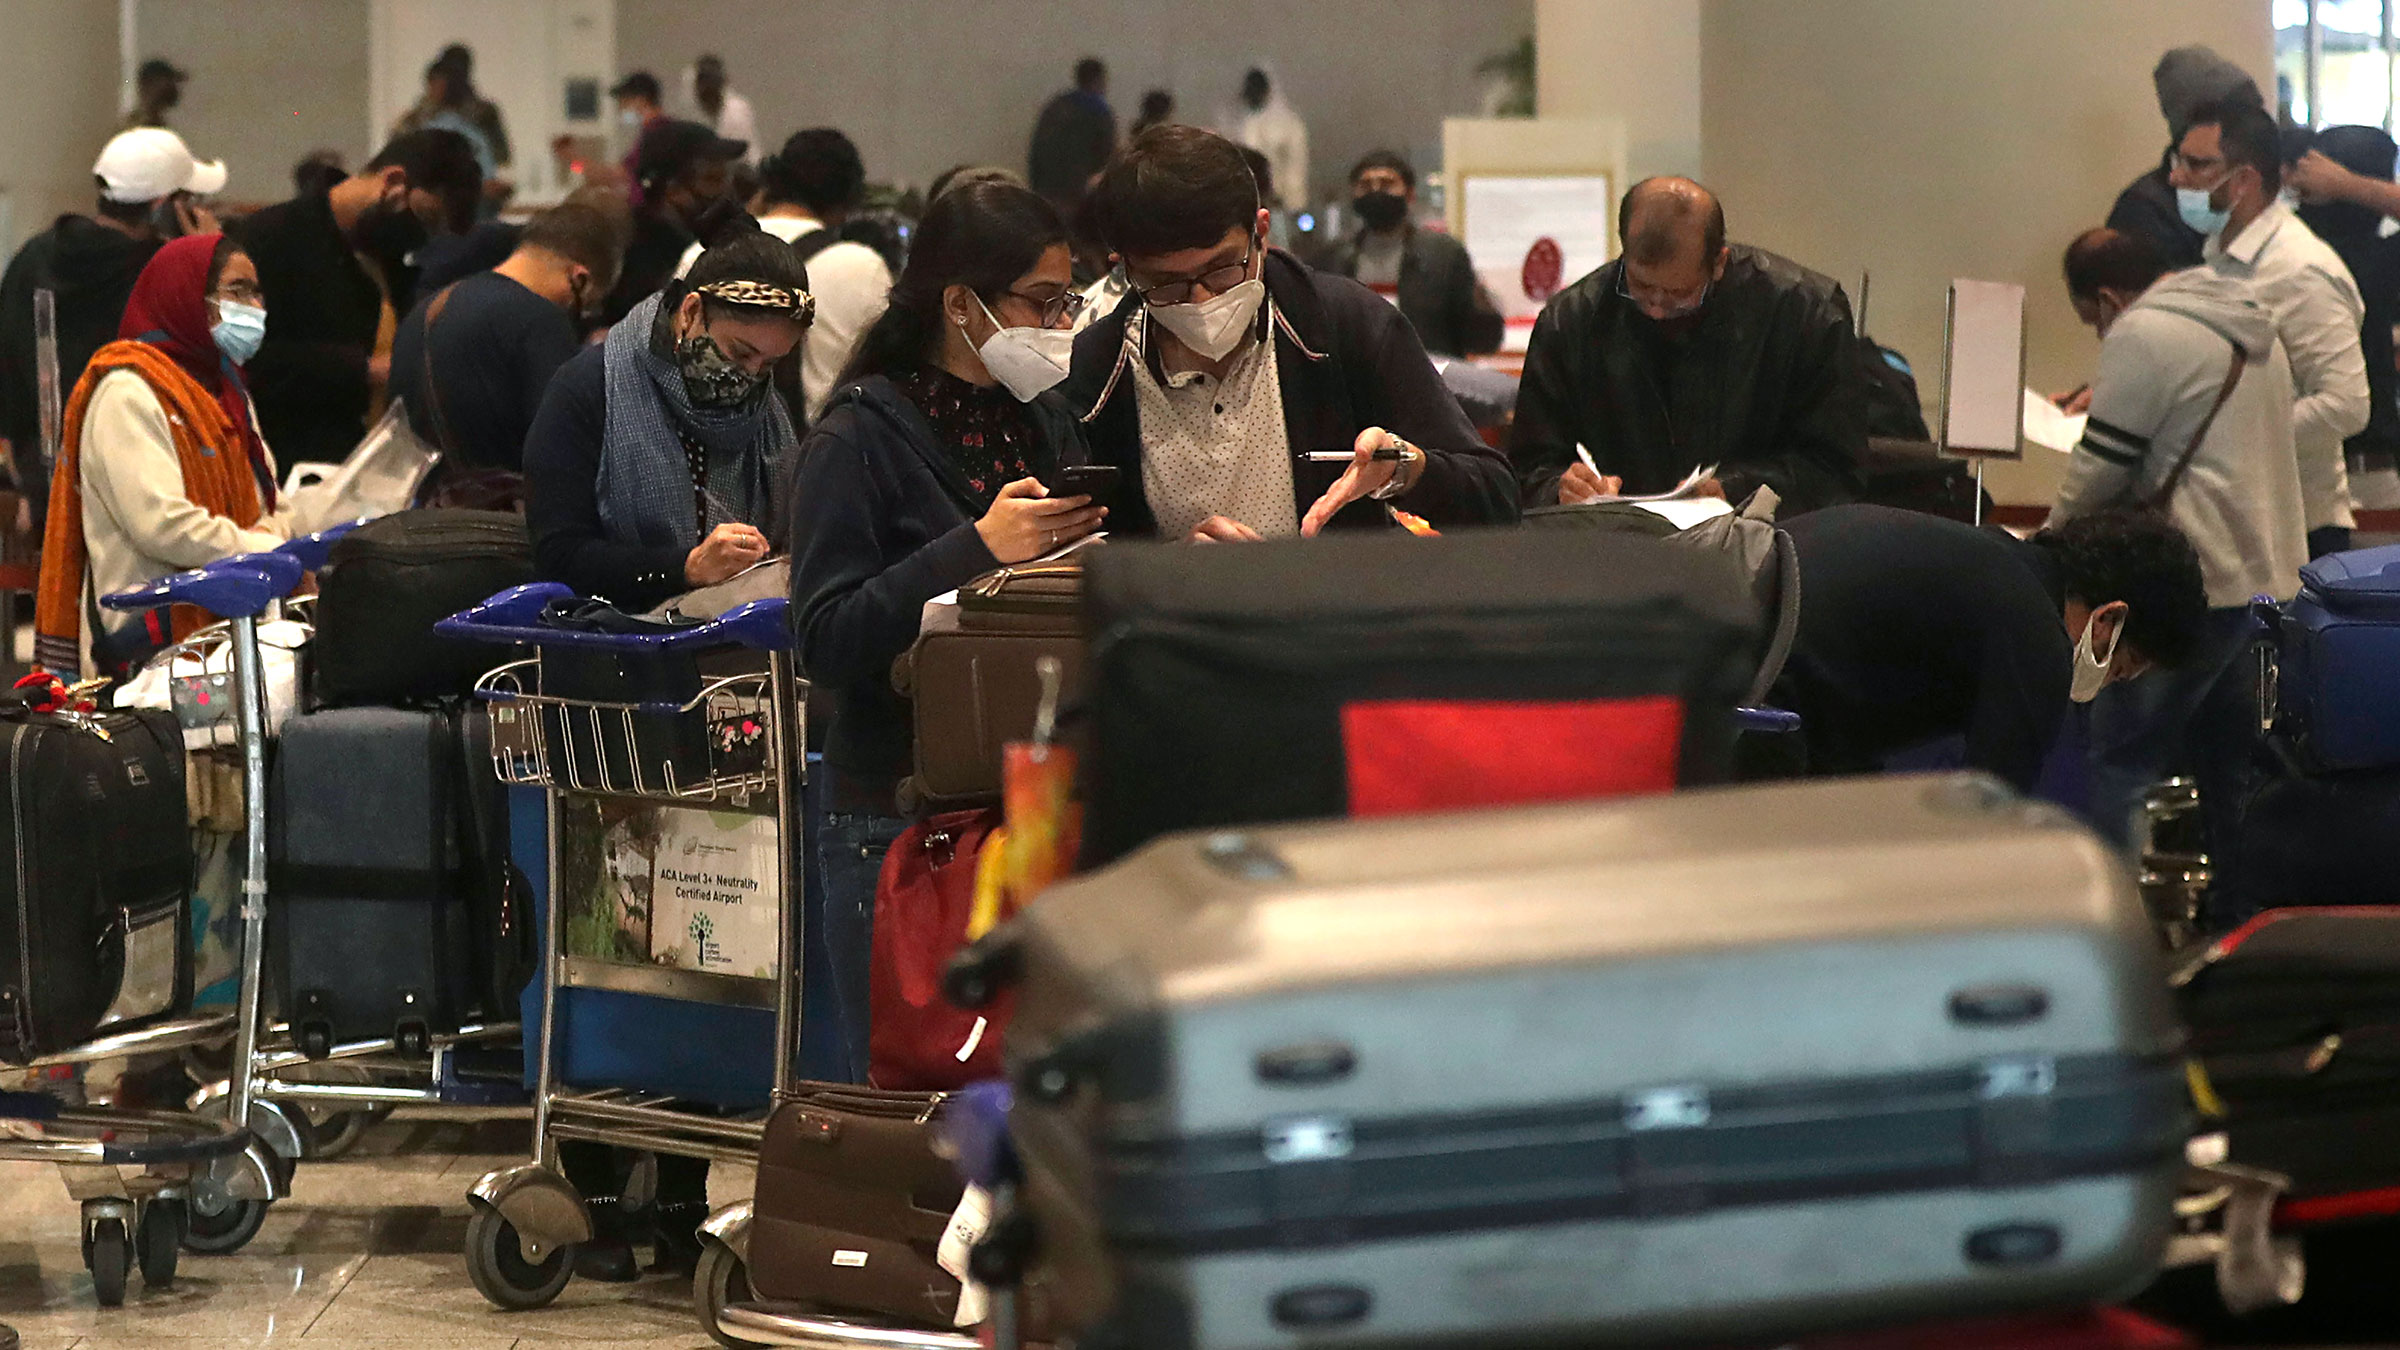 Passengers arriving from United Kingdom fill in forms with their travel details at Chhatrapati Shivaji Maharaj International Airport in Mumbai, India, on December 22, 2020.